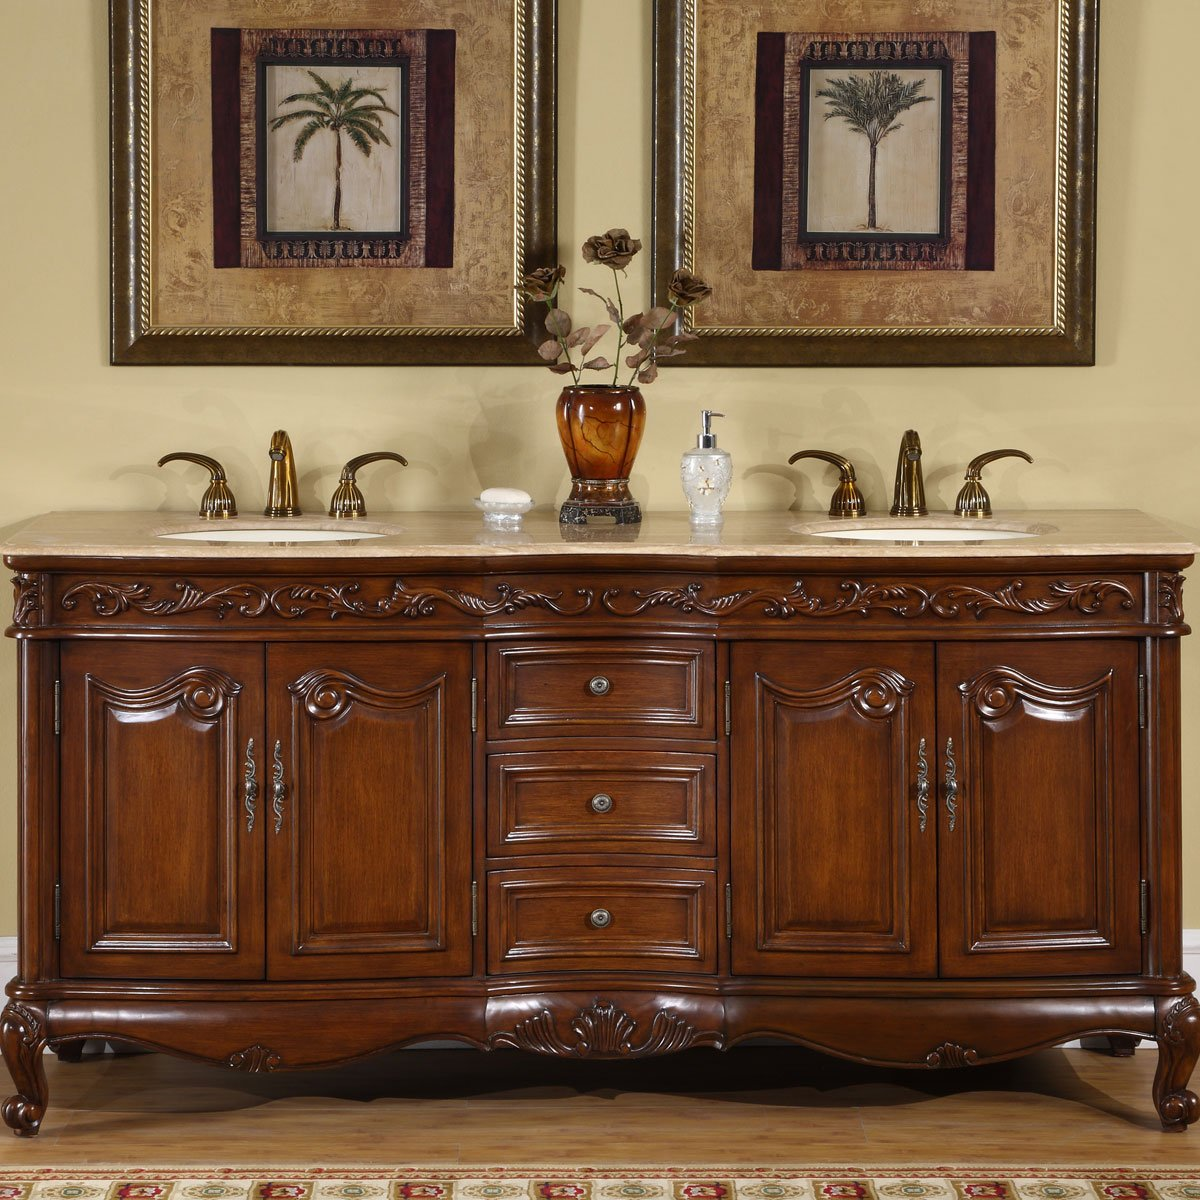 Silkroad Exclusive Travertine Stone Top Double Sink Bathroom Vanity with Bath Cabinet, 72-Inch by Silkroad Exclusive (Image #1)